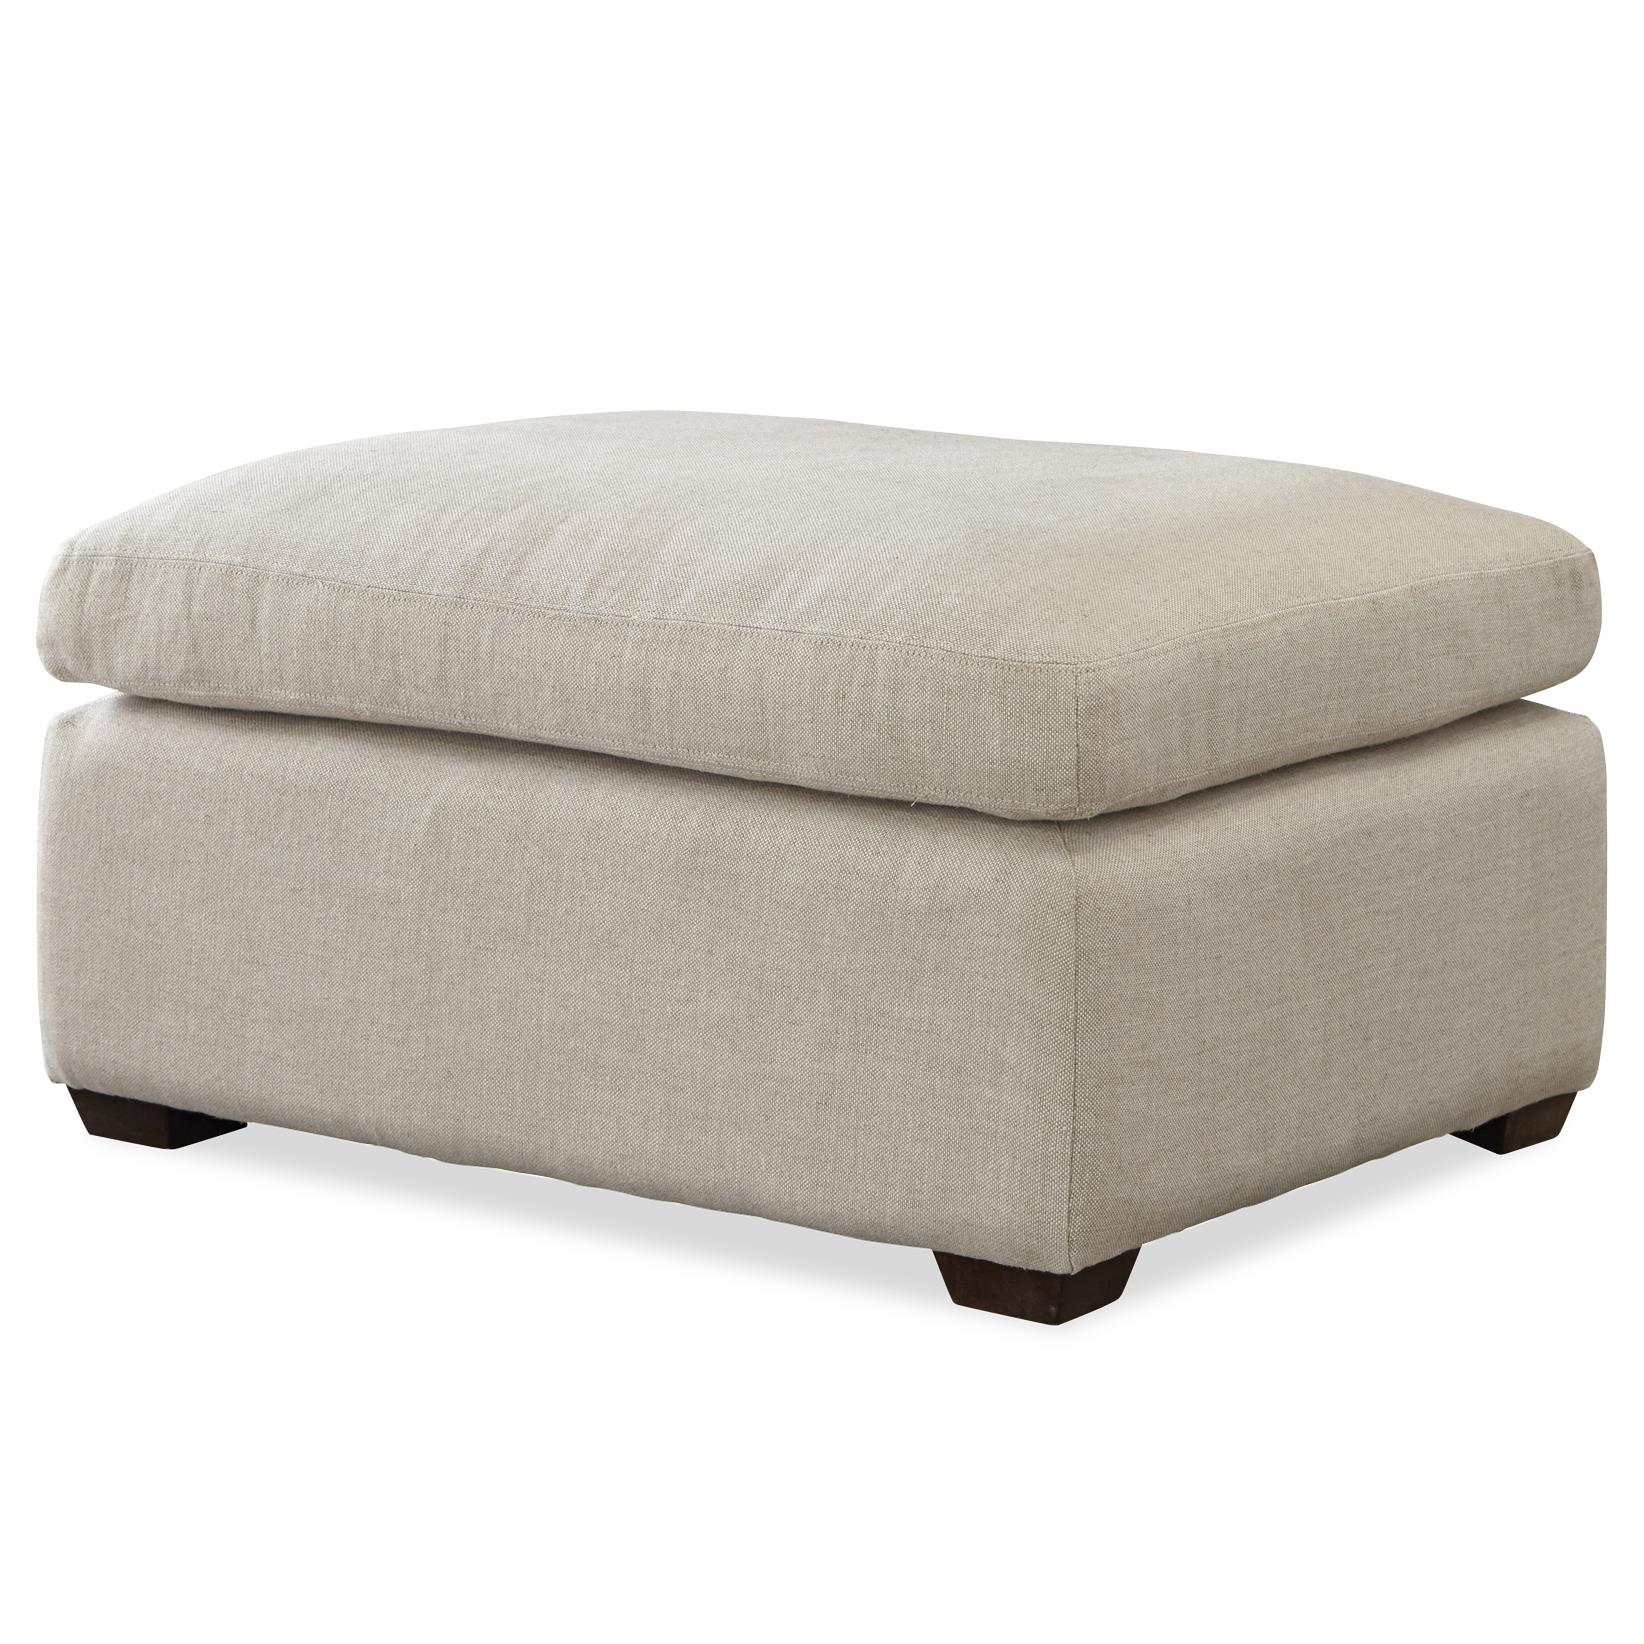 Universal Haven Transitional Ottoman With Block Feet